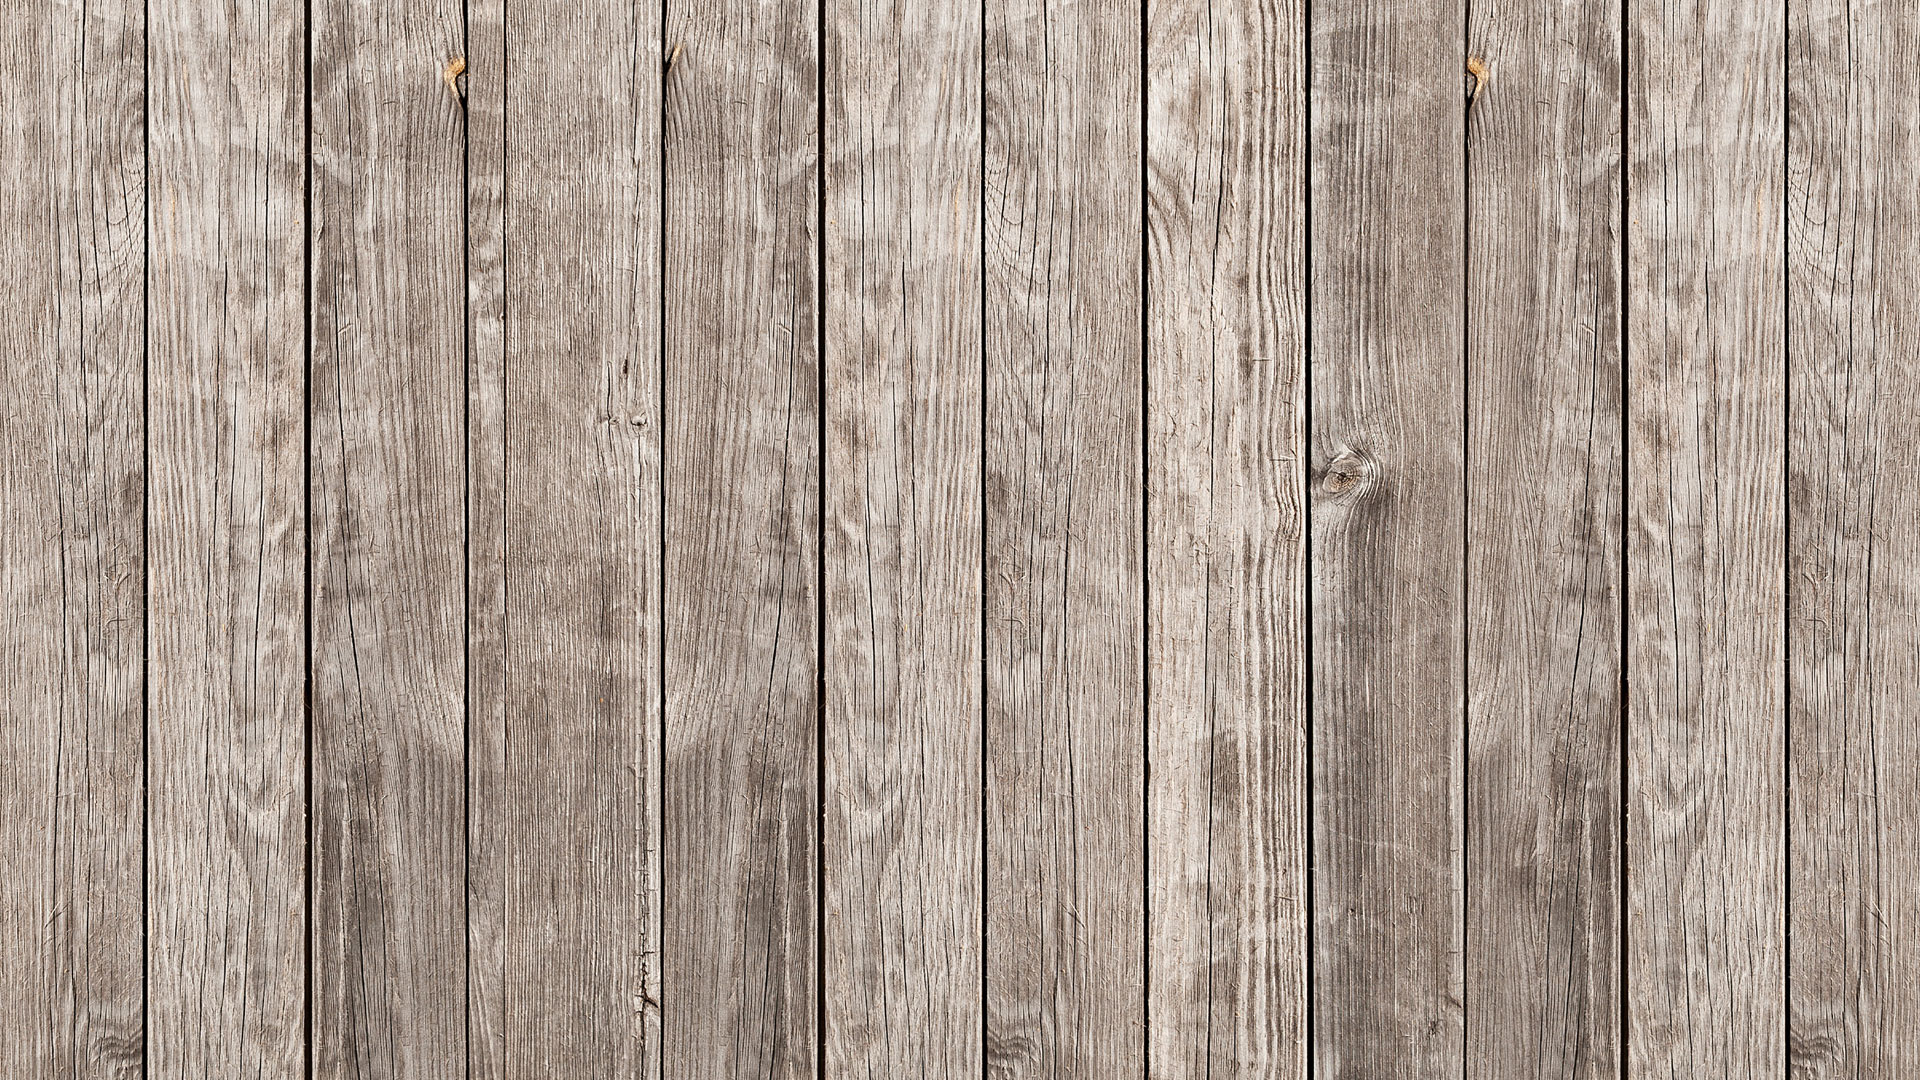 Wood panel background clipart clipart black and white download Best 53+ Wood Paneling Desktop Background on HipWallpaper ... clipart black and white download